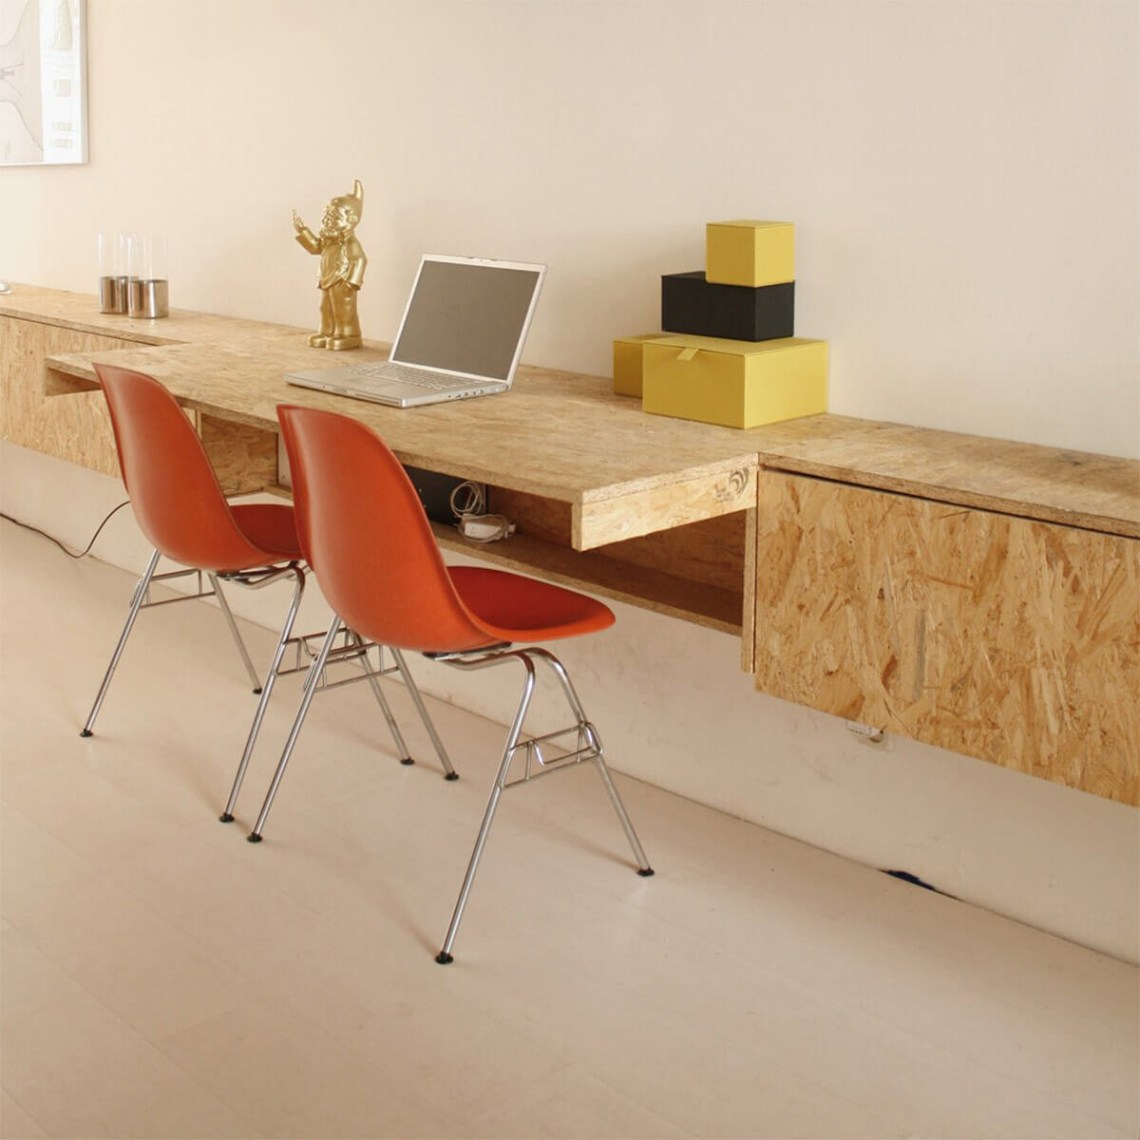 An affordable plywood wooden furniture desk ideas for office